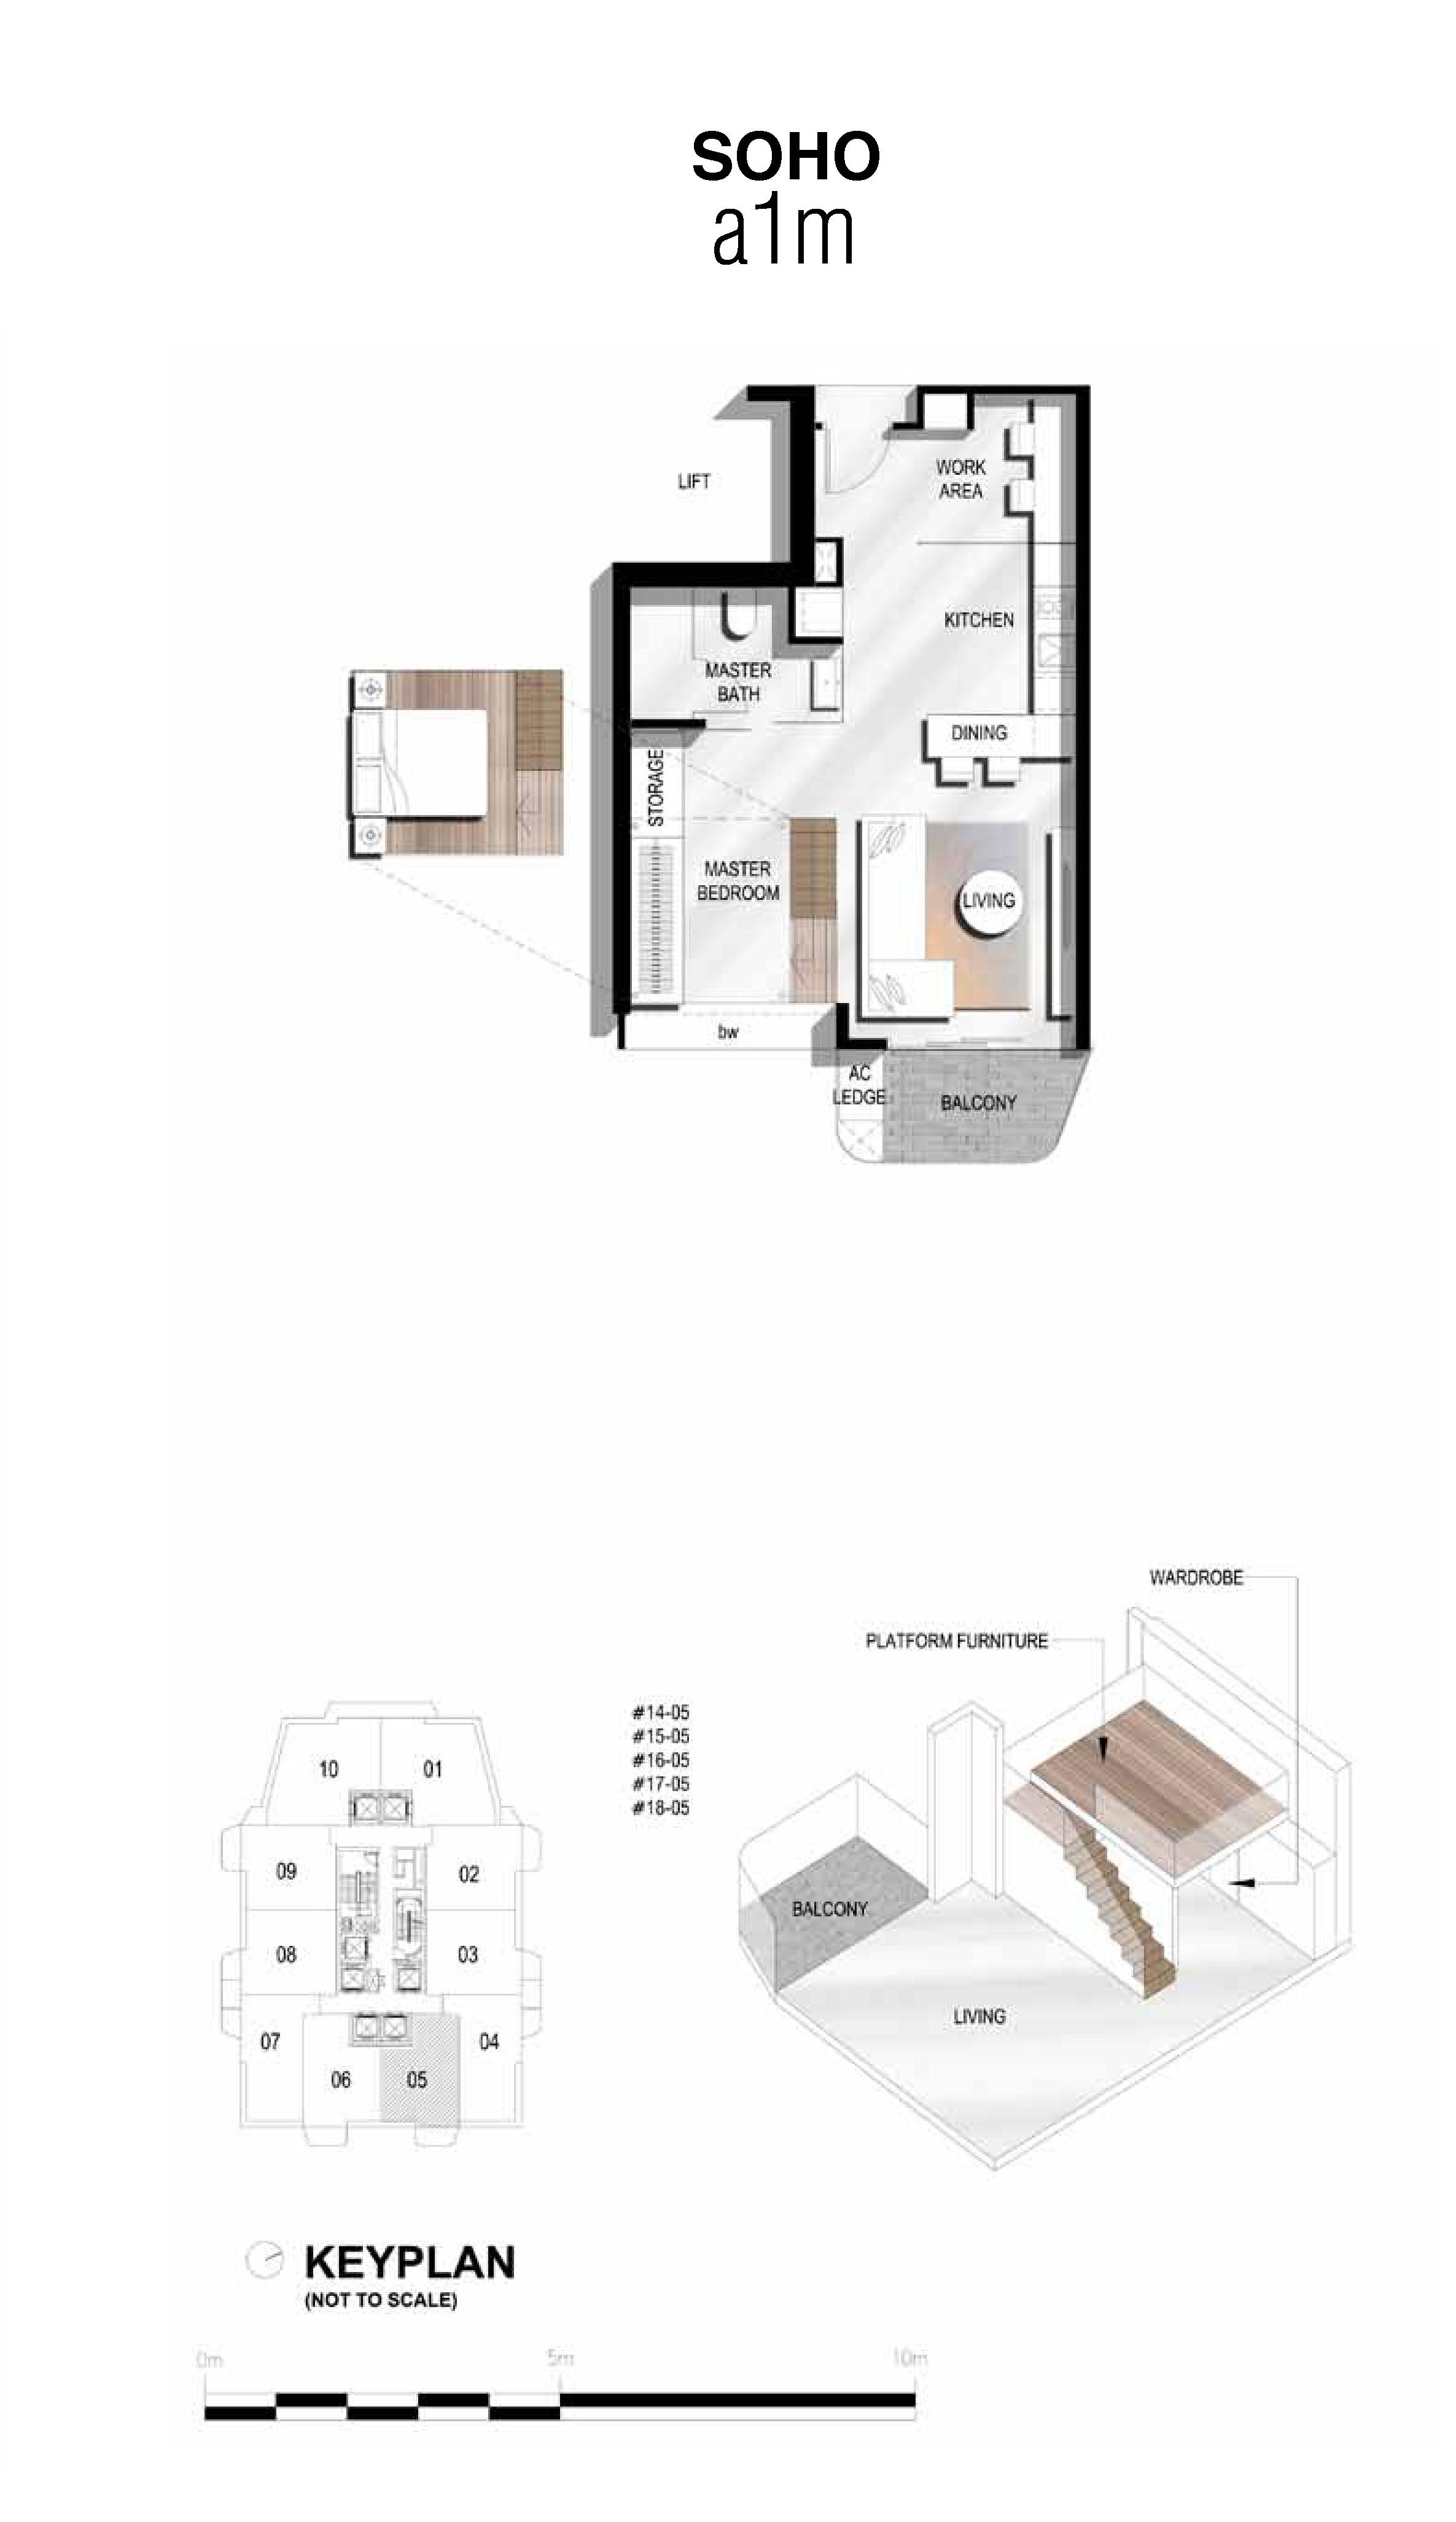 The Scotts Tower 1 Bedroom SOHO Type a1m Floor Plans